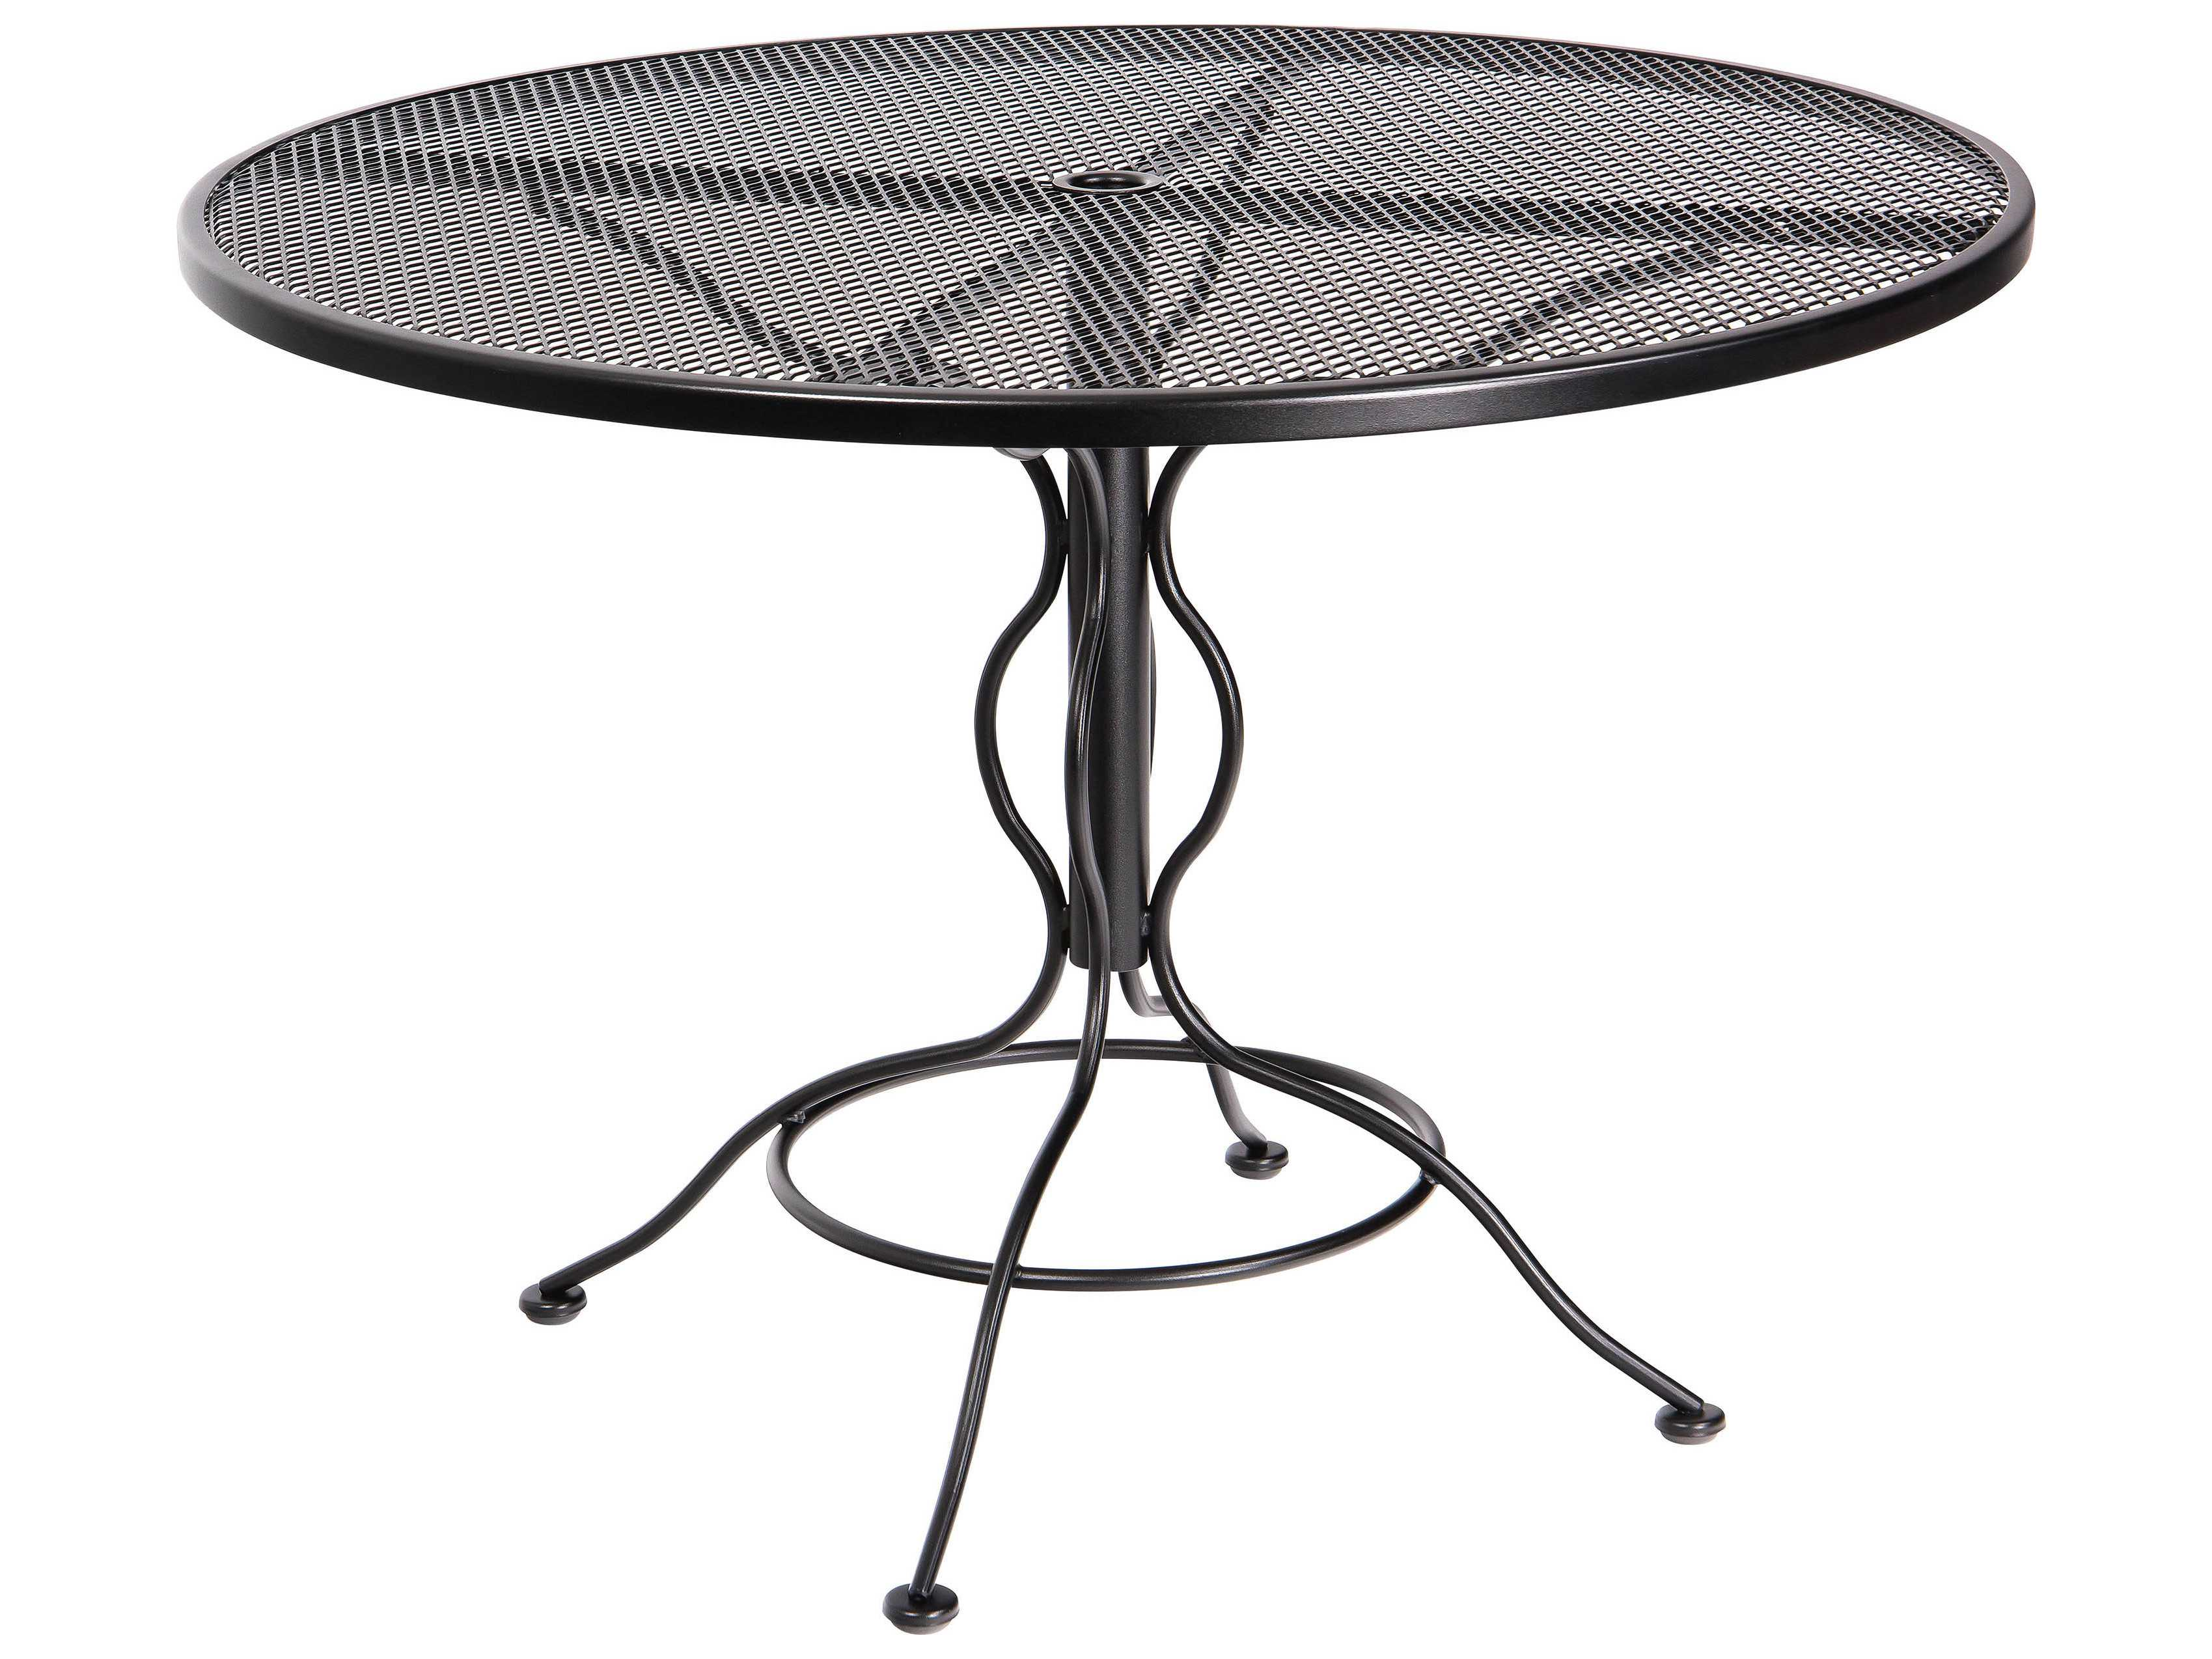 woodard mesh wrought iron 48 round curved legs table with umbrella hole wr190137. Black Bedroom Furniture Sets. Home Design Ideas